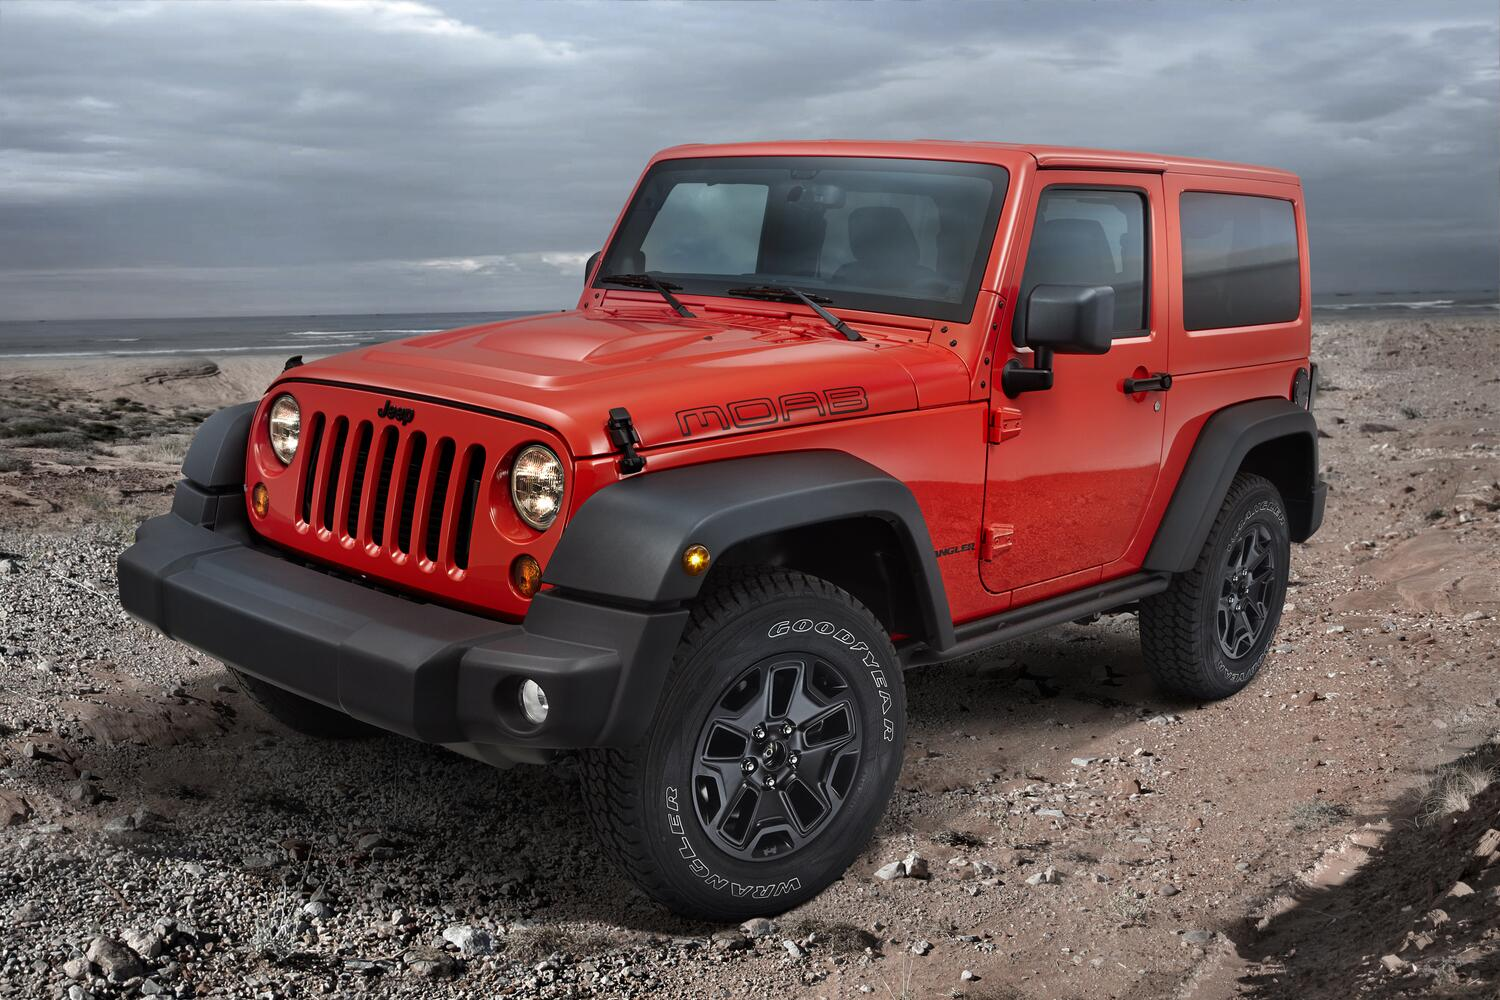 Hummer Gas Mileage >> 2013 Jeep Wrangler Review, Ratings, Specs, Prices, and Photos - The Car Connection